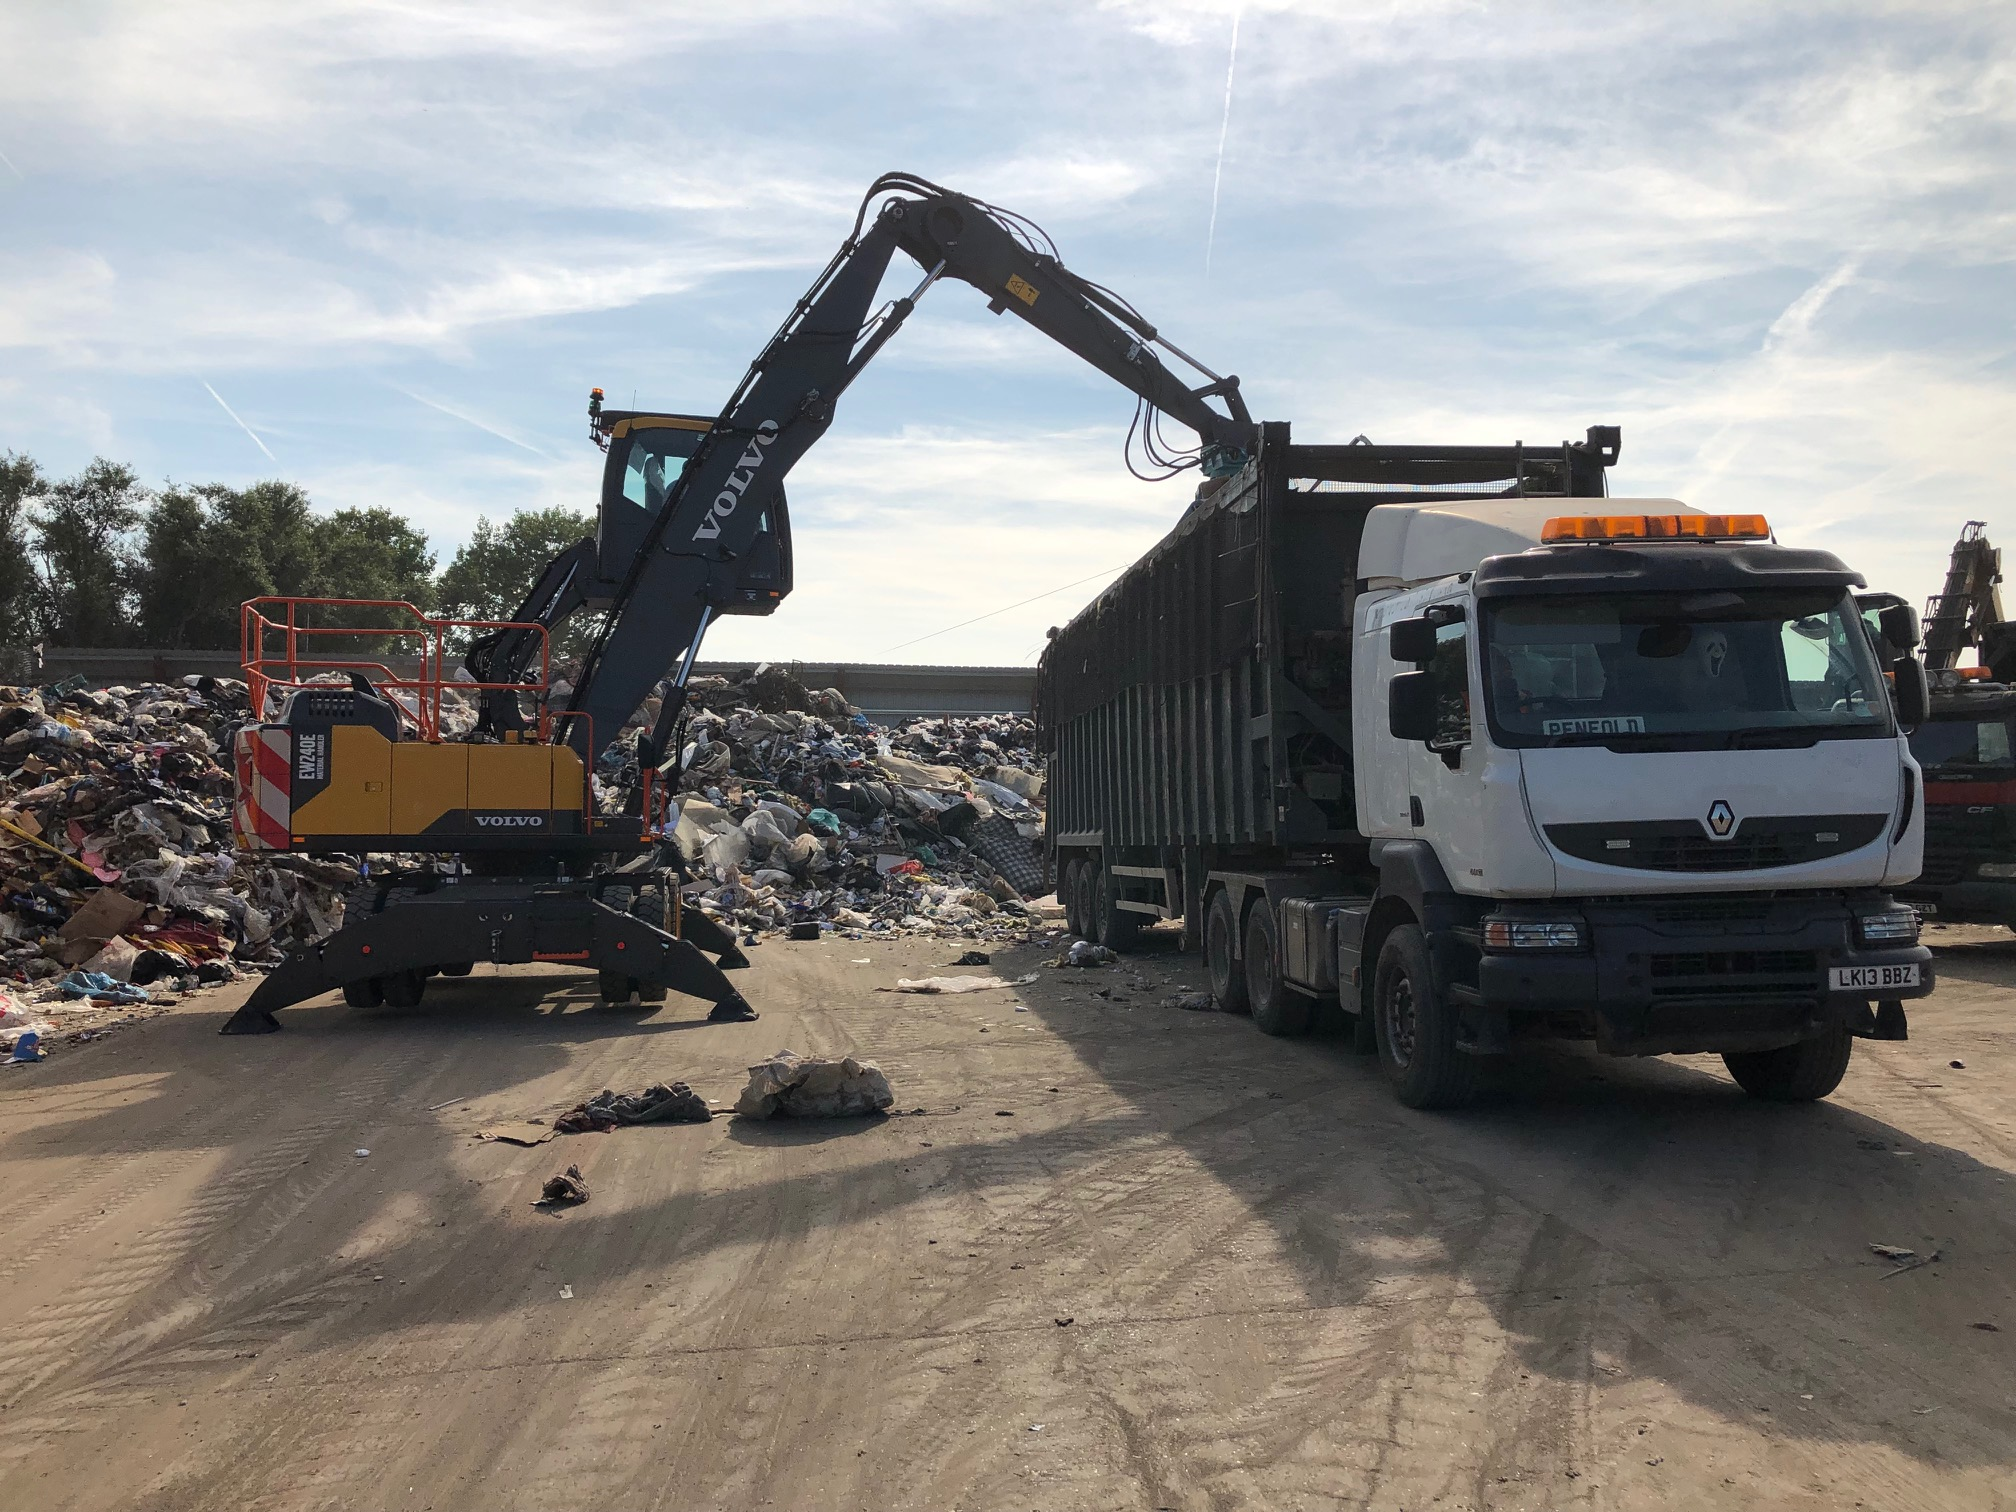 General Waste disposal in Essex, James Waste Rochfod Waste and Recycling